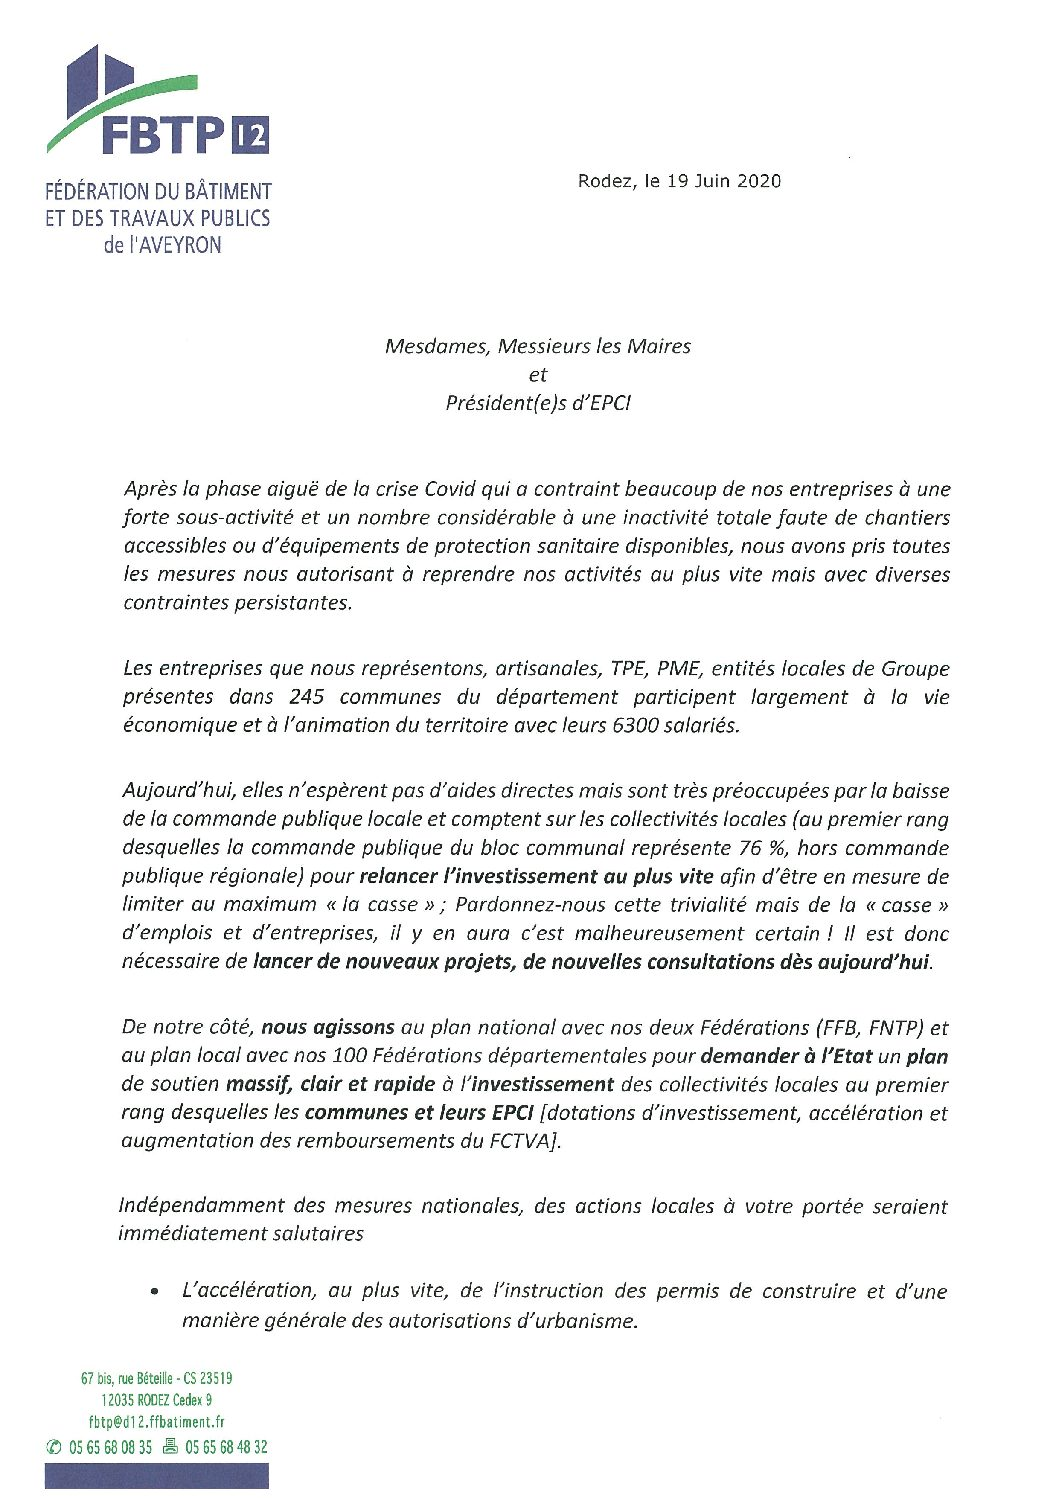 Courrier de la FBTP à l'attention des maires et présidents